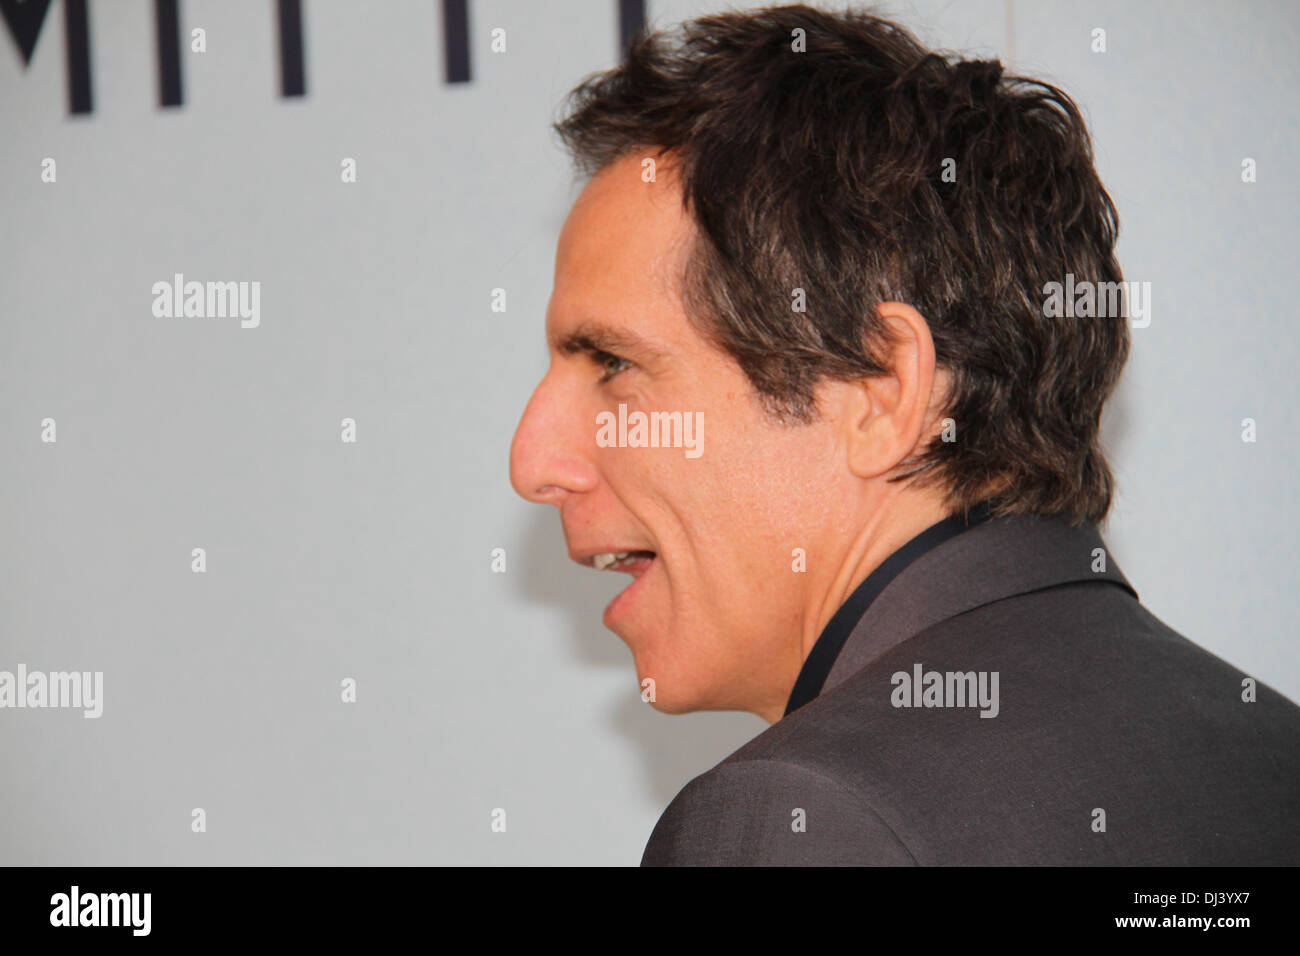 Sydney Entertainment Centre, Sydney, NSW, Australia. 21st November 2013.  Ben Stiller (Zoolander, Meet The Parents) and Kristen Wiig (Bridesmaids) attended the red carpet Australian Premiere of The Secret Life of Walter Mitty. Pictured is Ben Stiller. Copyright Credit:  2013 Richard Milnes/Alamy Live News. - Stock Image